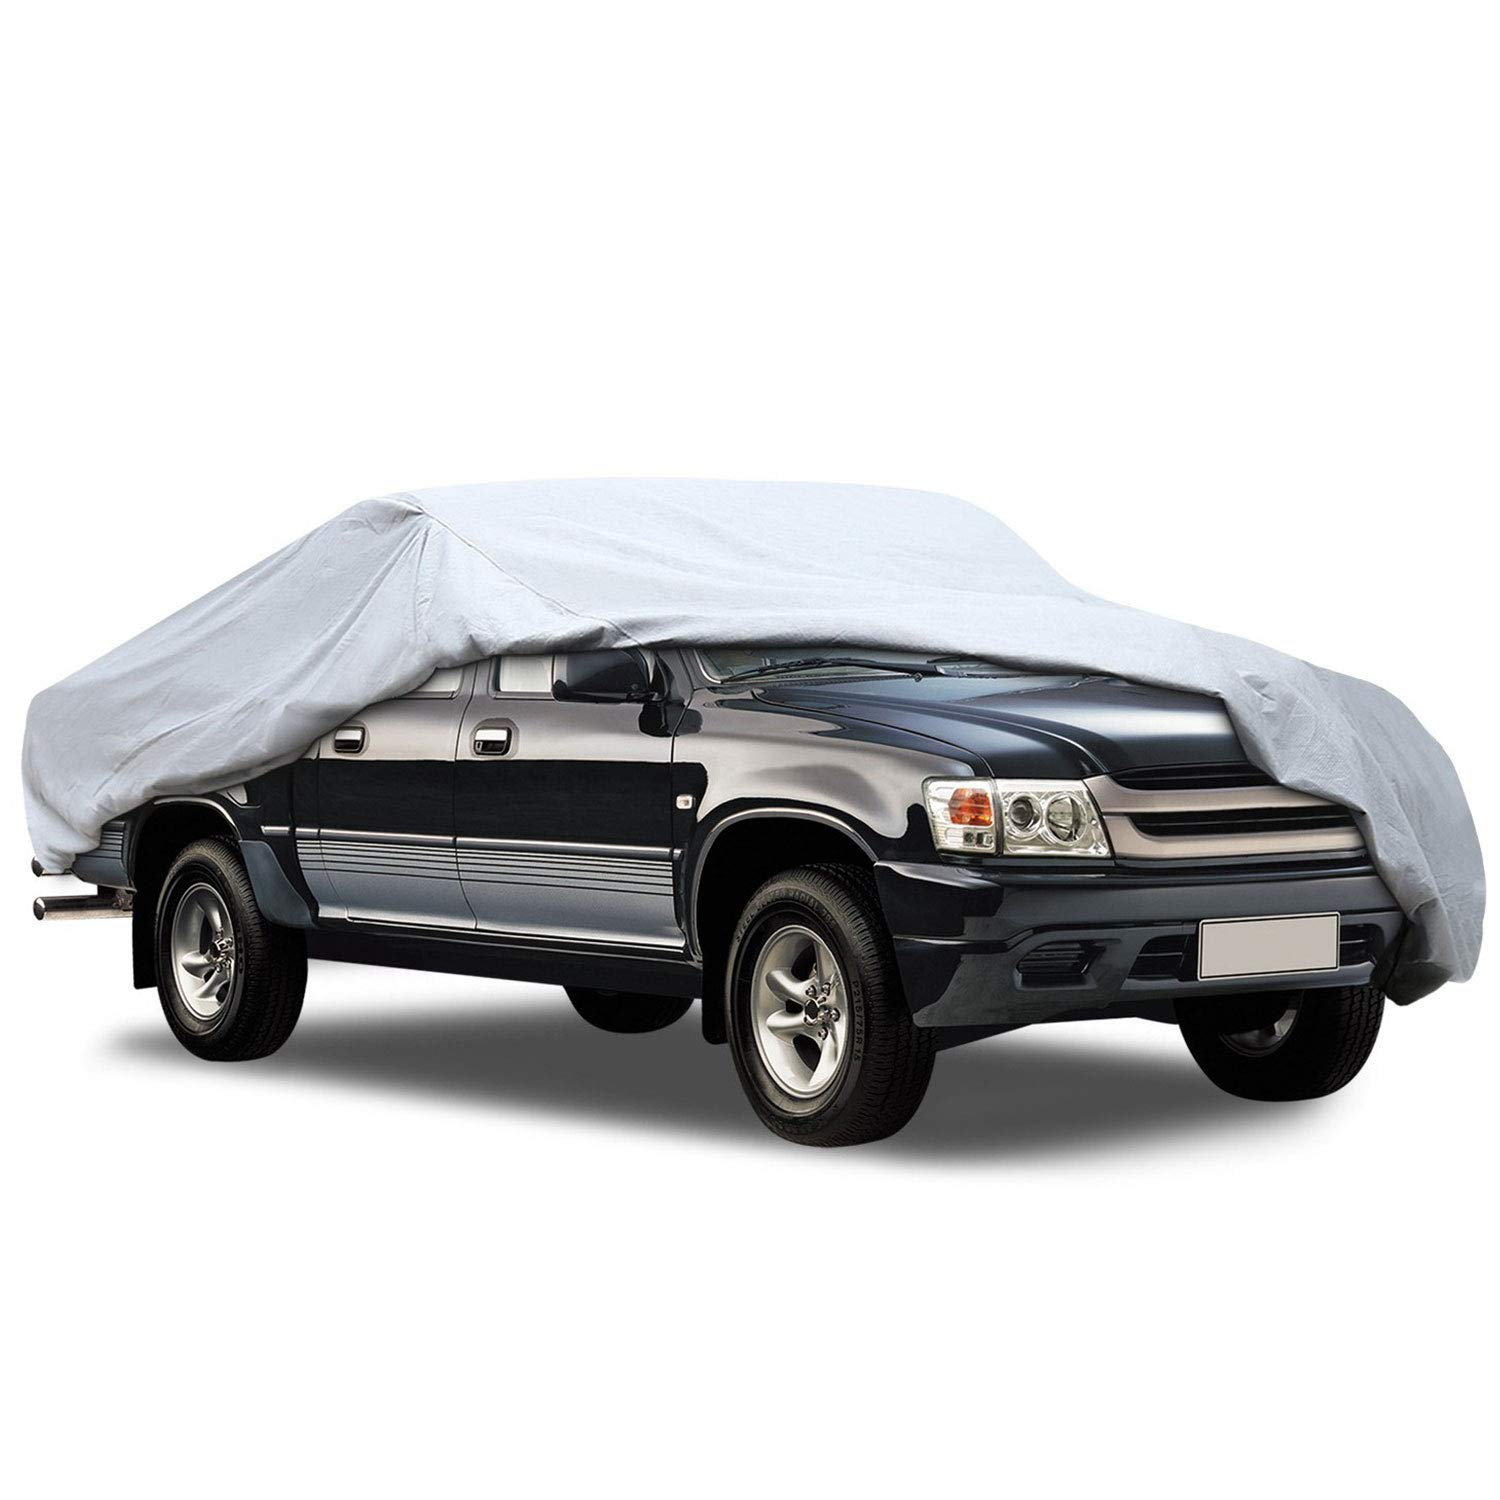 KAKIT SUV Cover Snowproof Waterproof All Weather Polyester Sun UV Protection Windproof Universal Outdoor Car Cover for SUV with Driver Door Zipper Fits up to 194